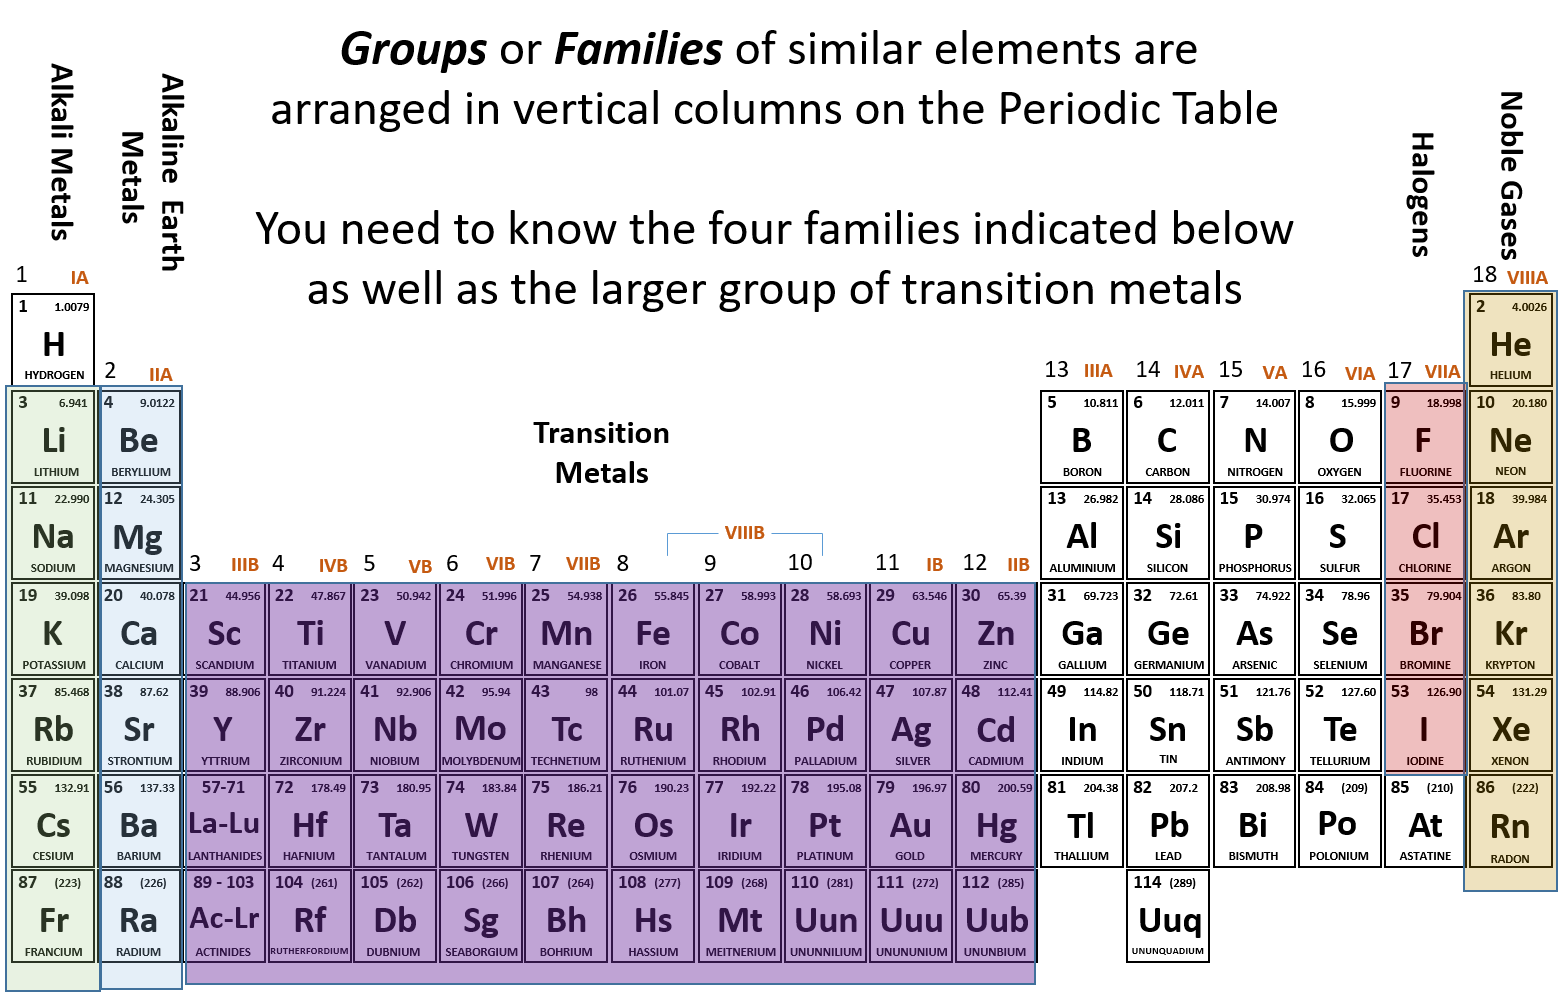 groups and fams iipng - In The Periodic Table As The Atomic Number Increases From 11 To 17